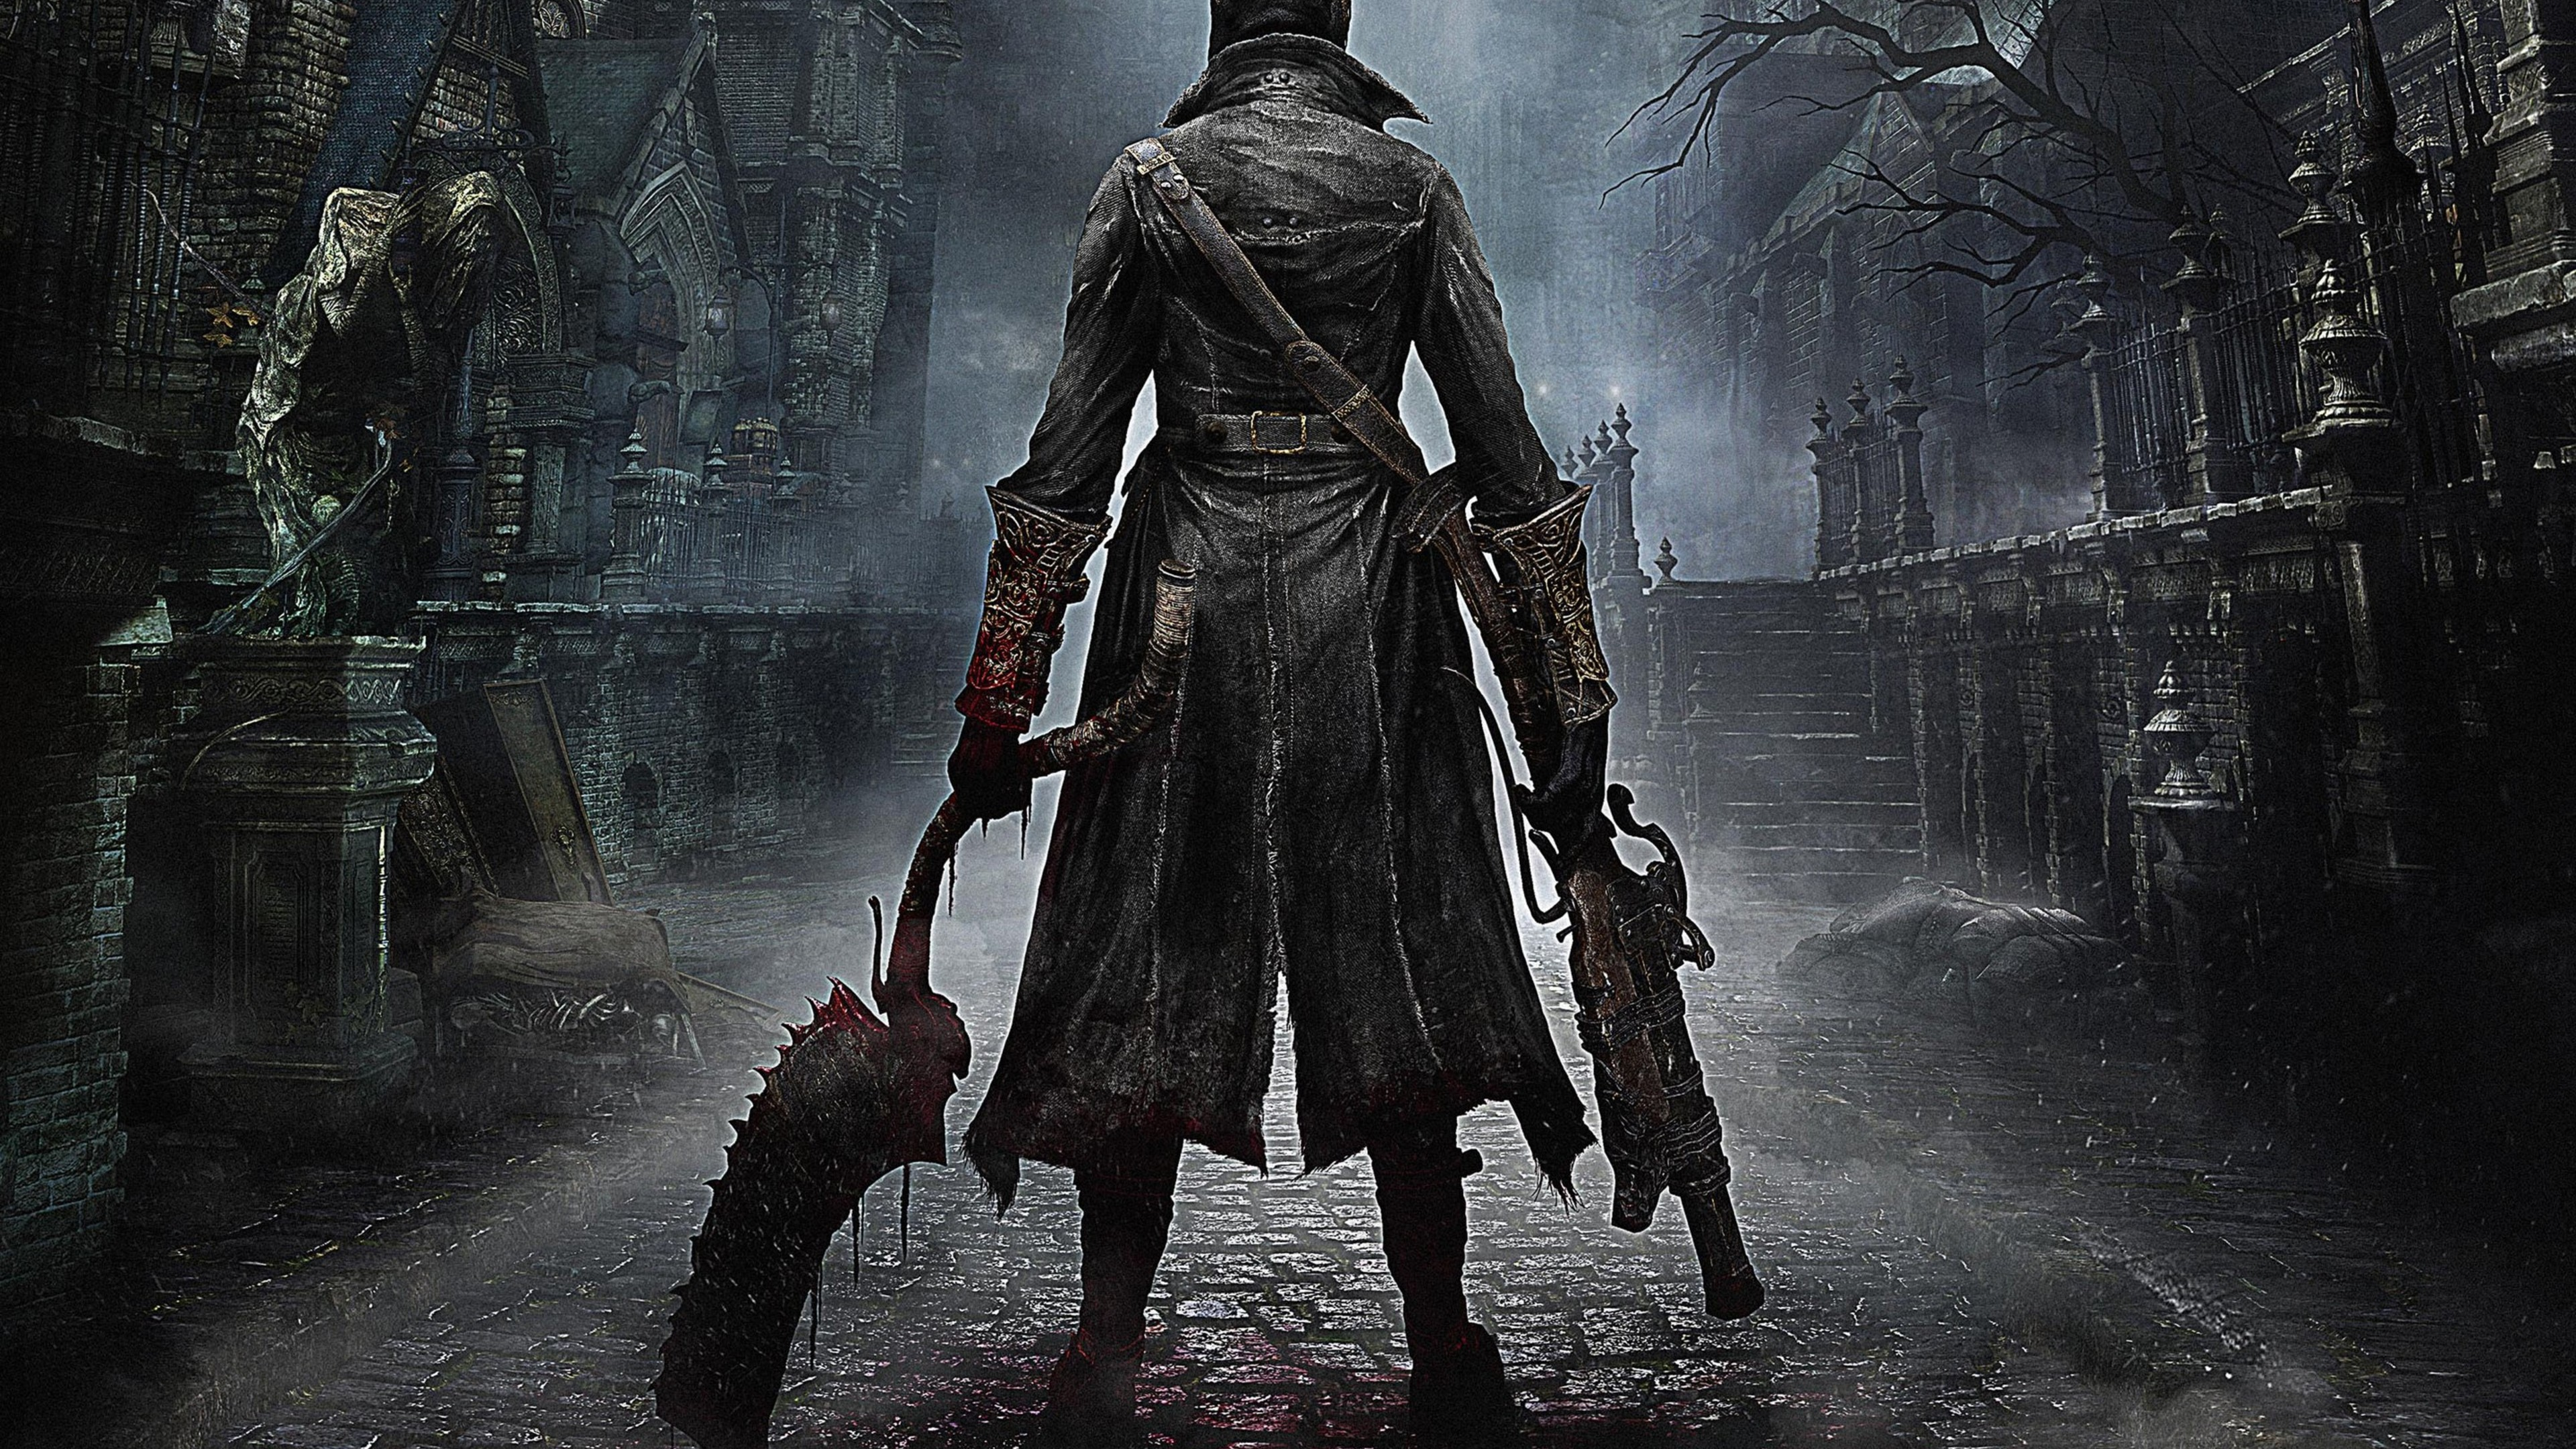 bloodborne ps4 game, hd games, 4k wallpapers, images, backgrounds